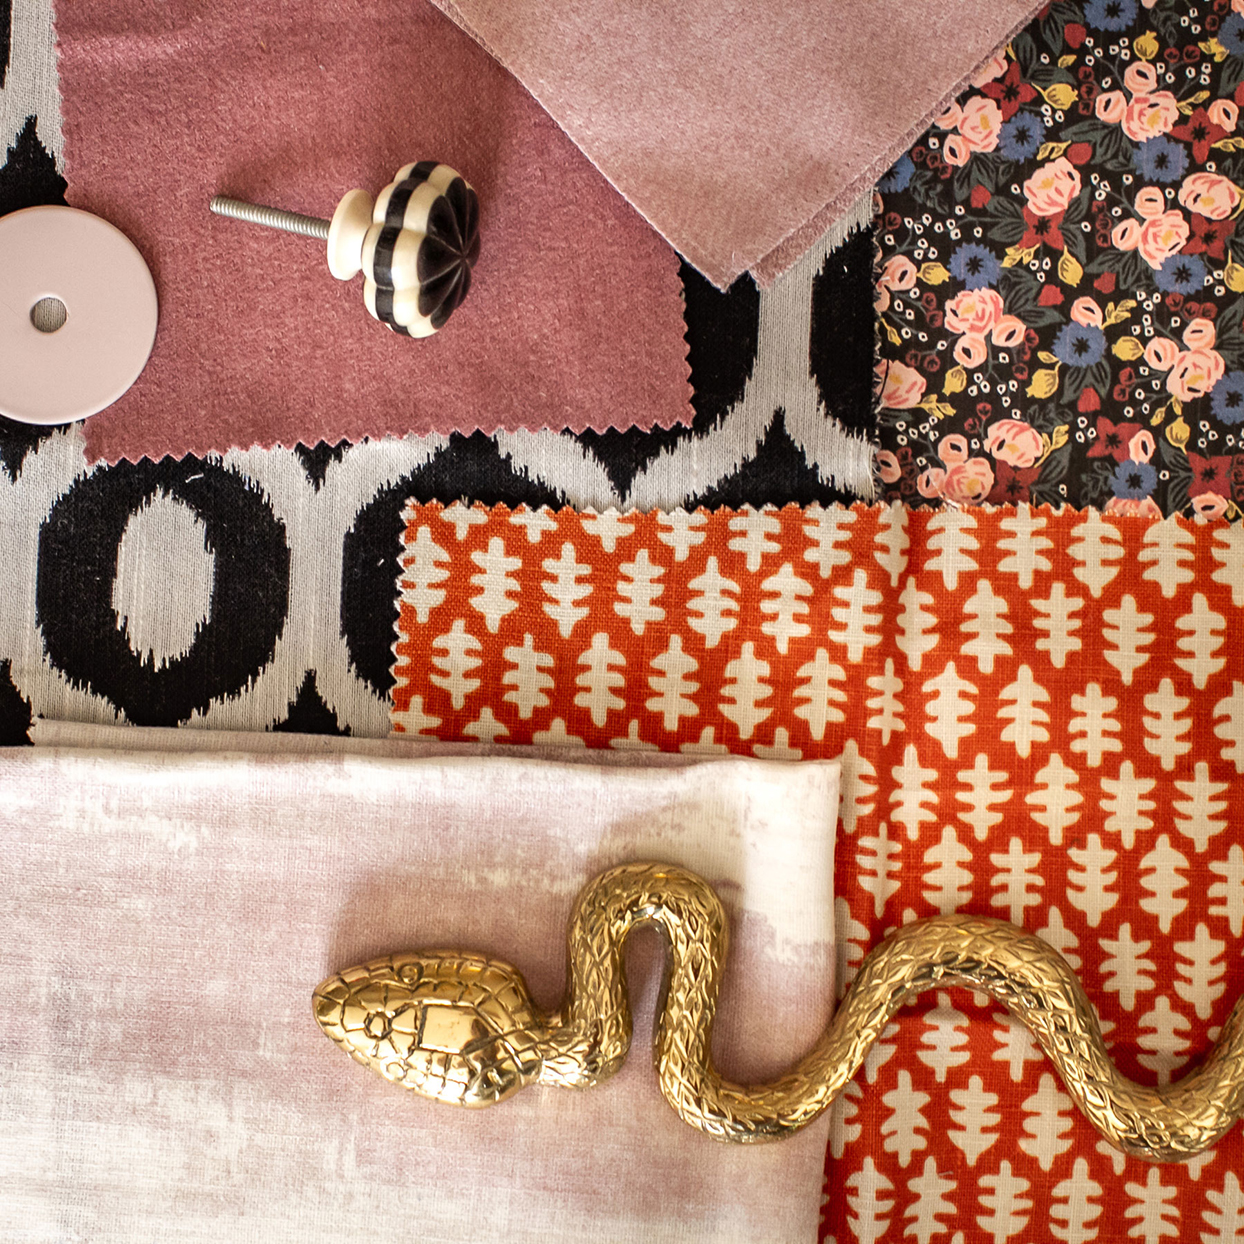 black hardware pull and brass snake on top of solid pink and multicolored pattern fabric swatches